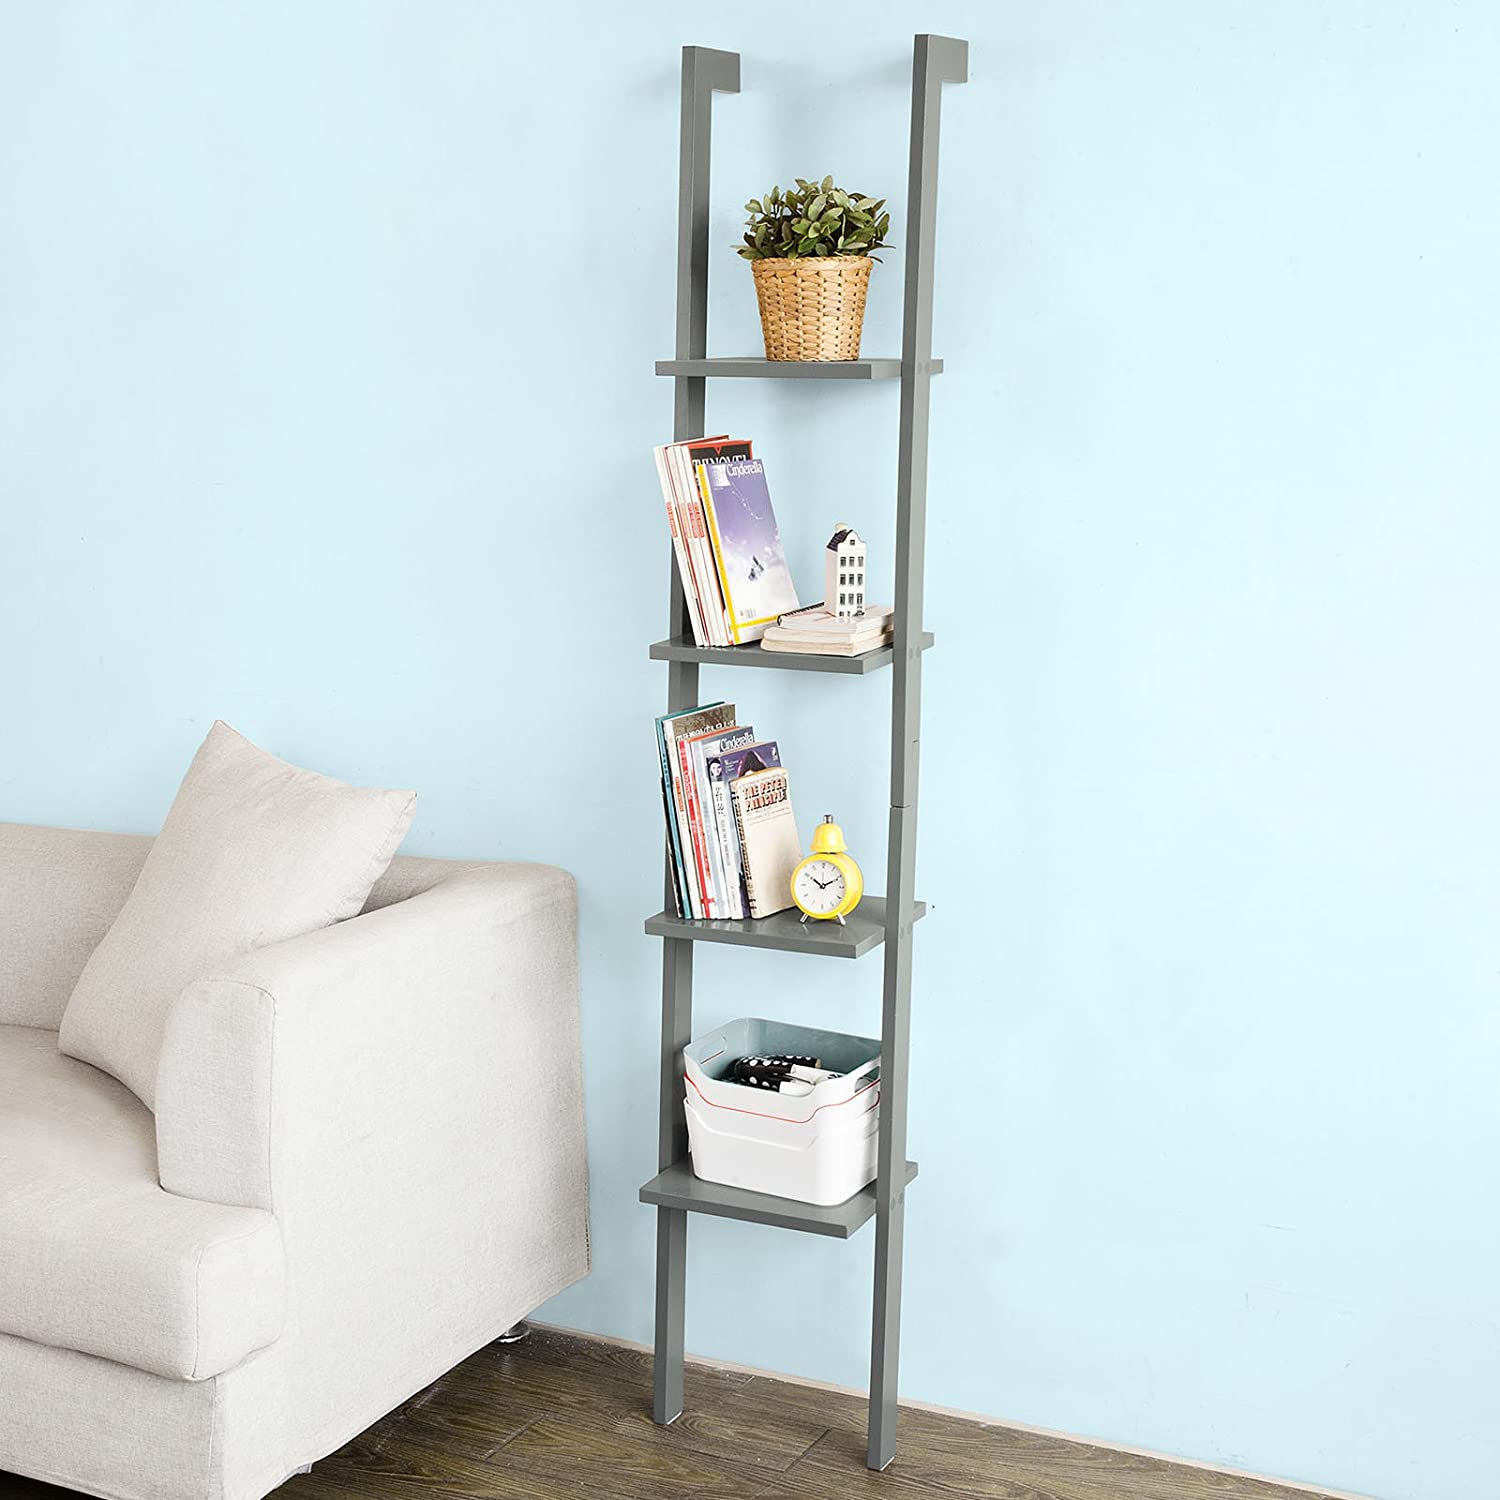 Ladder bookcase see picture - Amazon Com Sobuy Modern Ladder Bookcase Made Of Wood With Four Floors Book Shelf Stand Shelf Wall Shelf 12 99inch X 70 87inch Frg15 Hg Home Kitchen